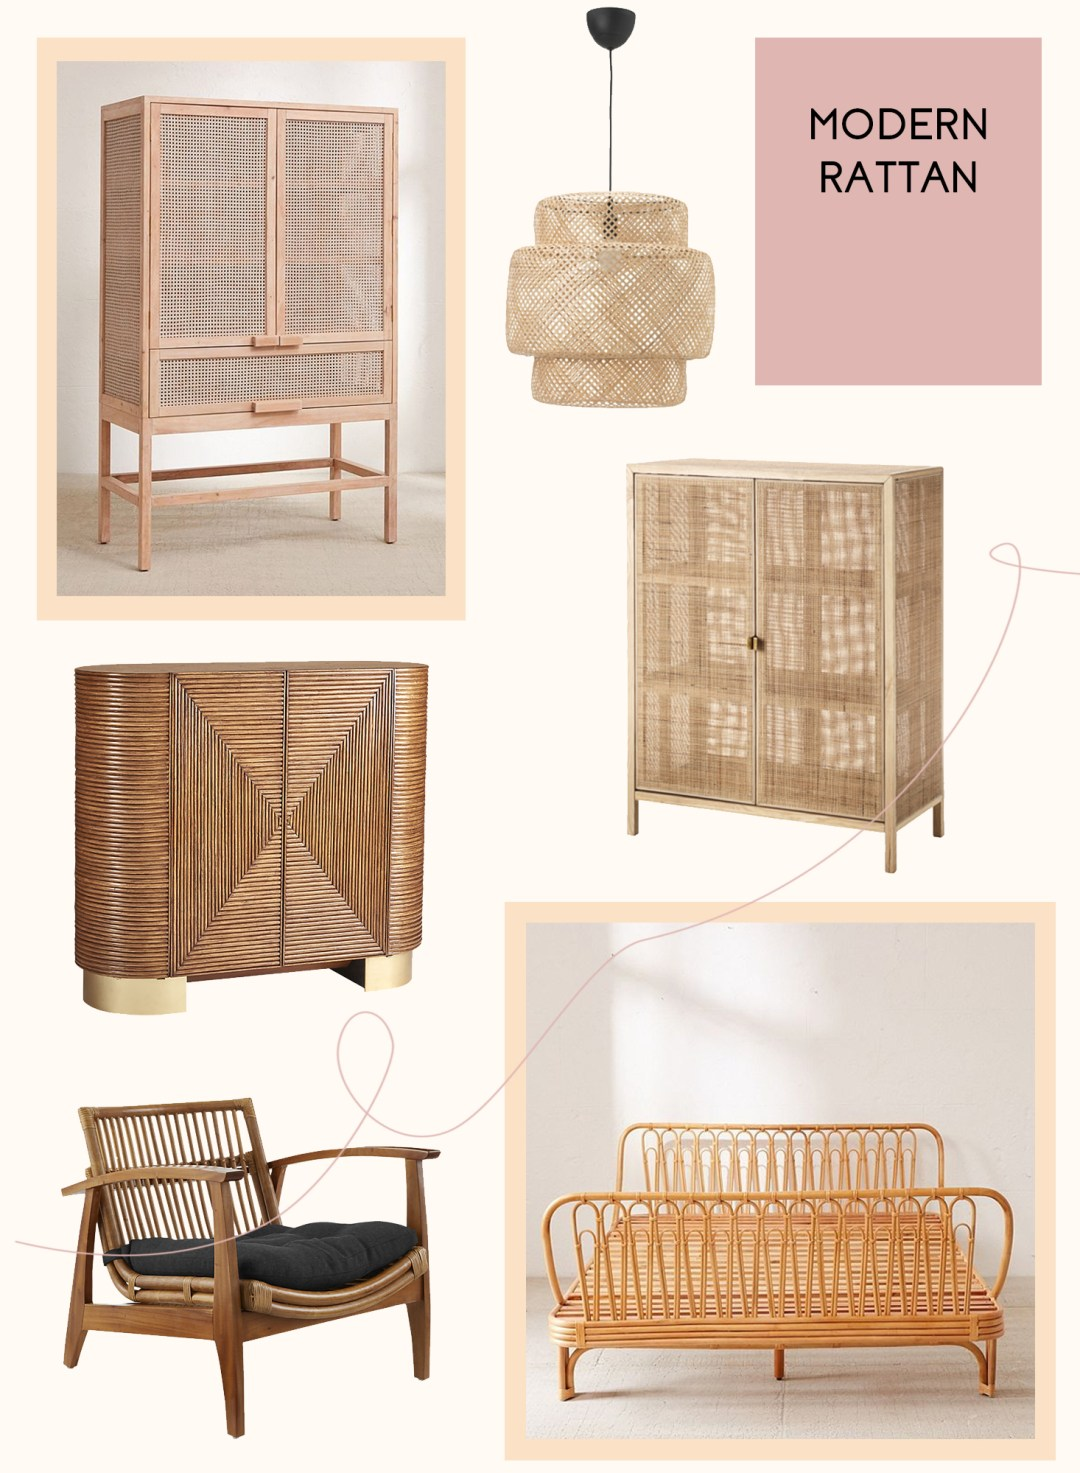 Trend - Modern Rattan | The Sweet Beast Blog